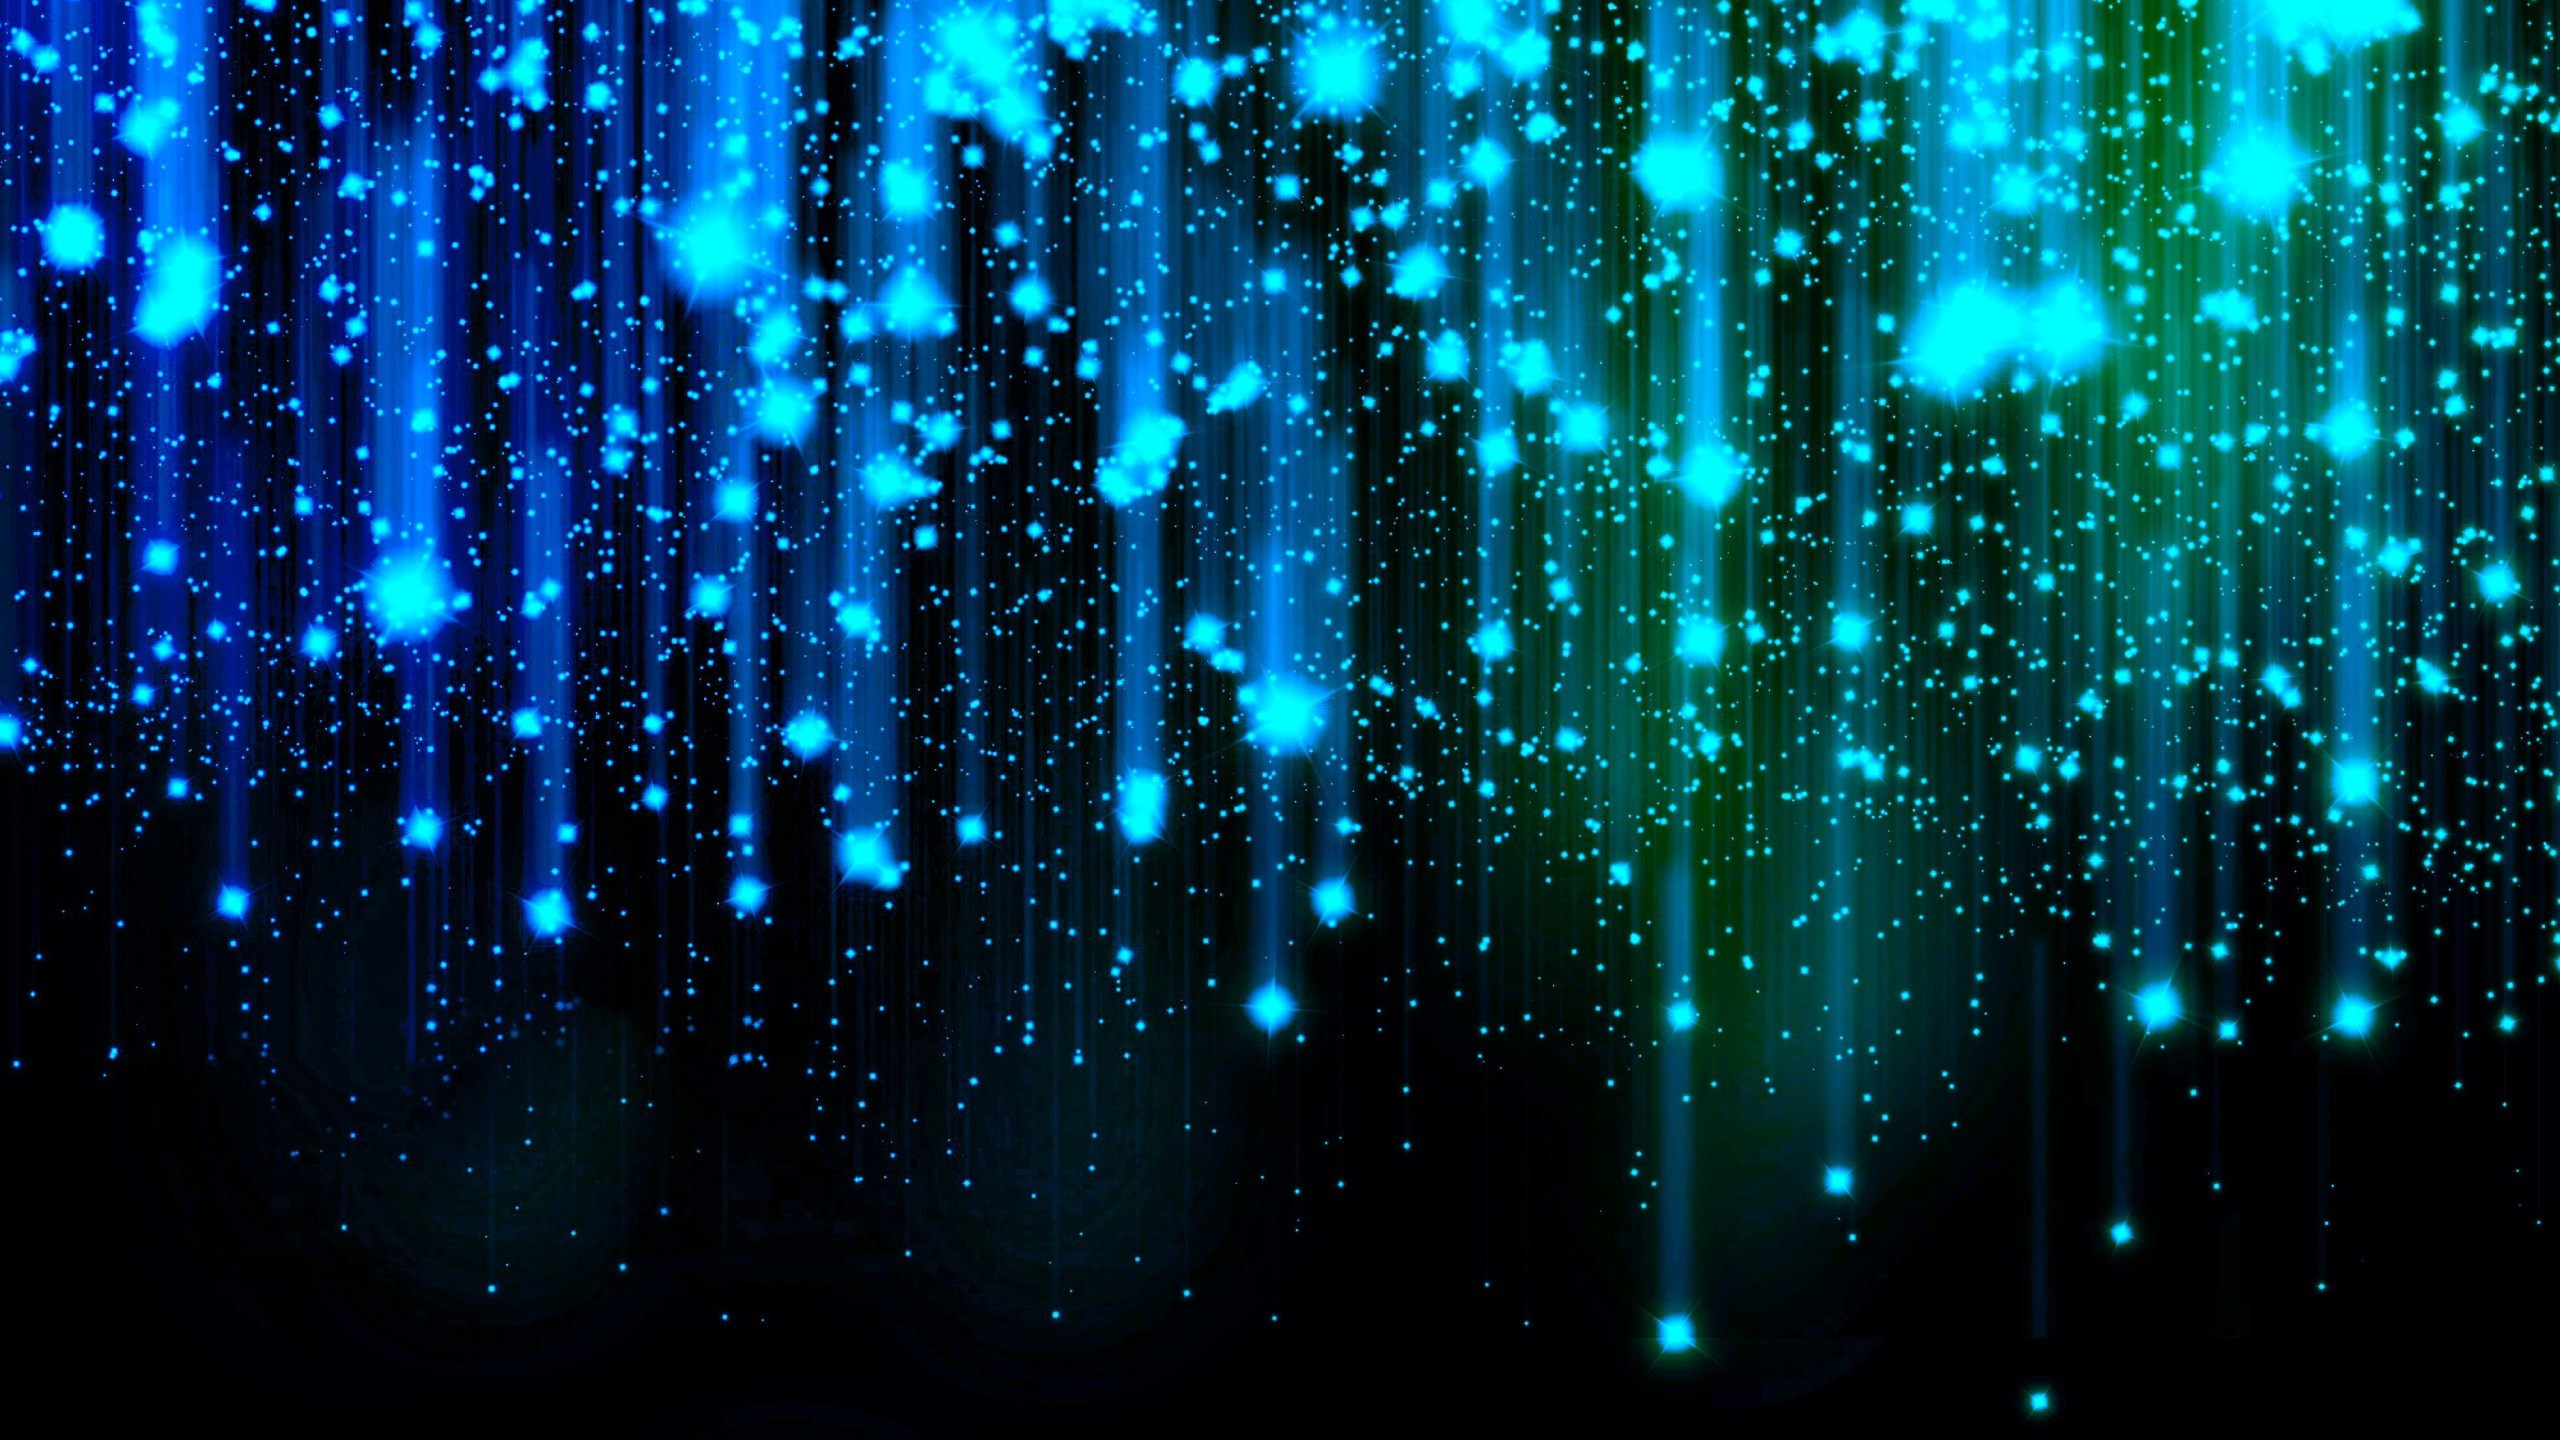 wallpaper.wiki-Blue-Sparkle-Glow-Abstract-Wallpaper-2560×1440-